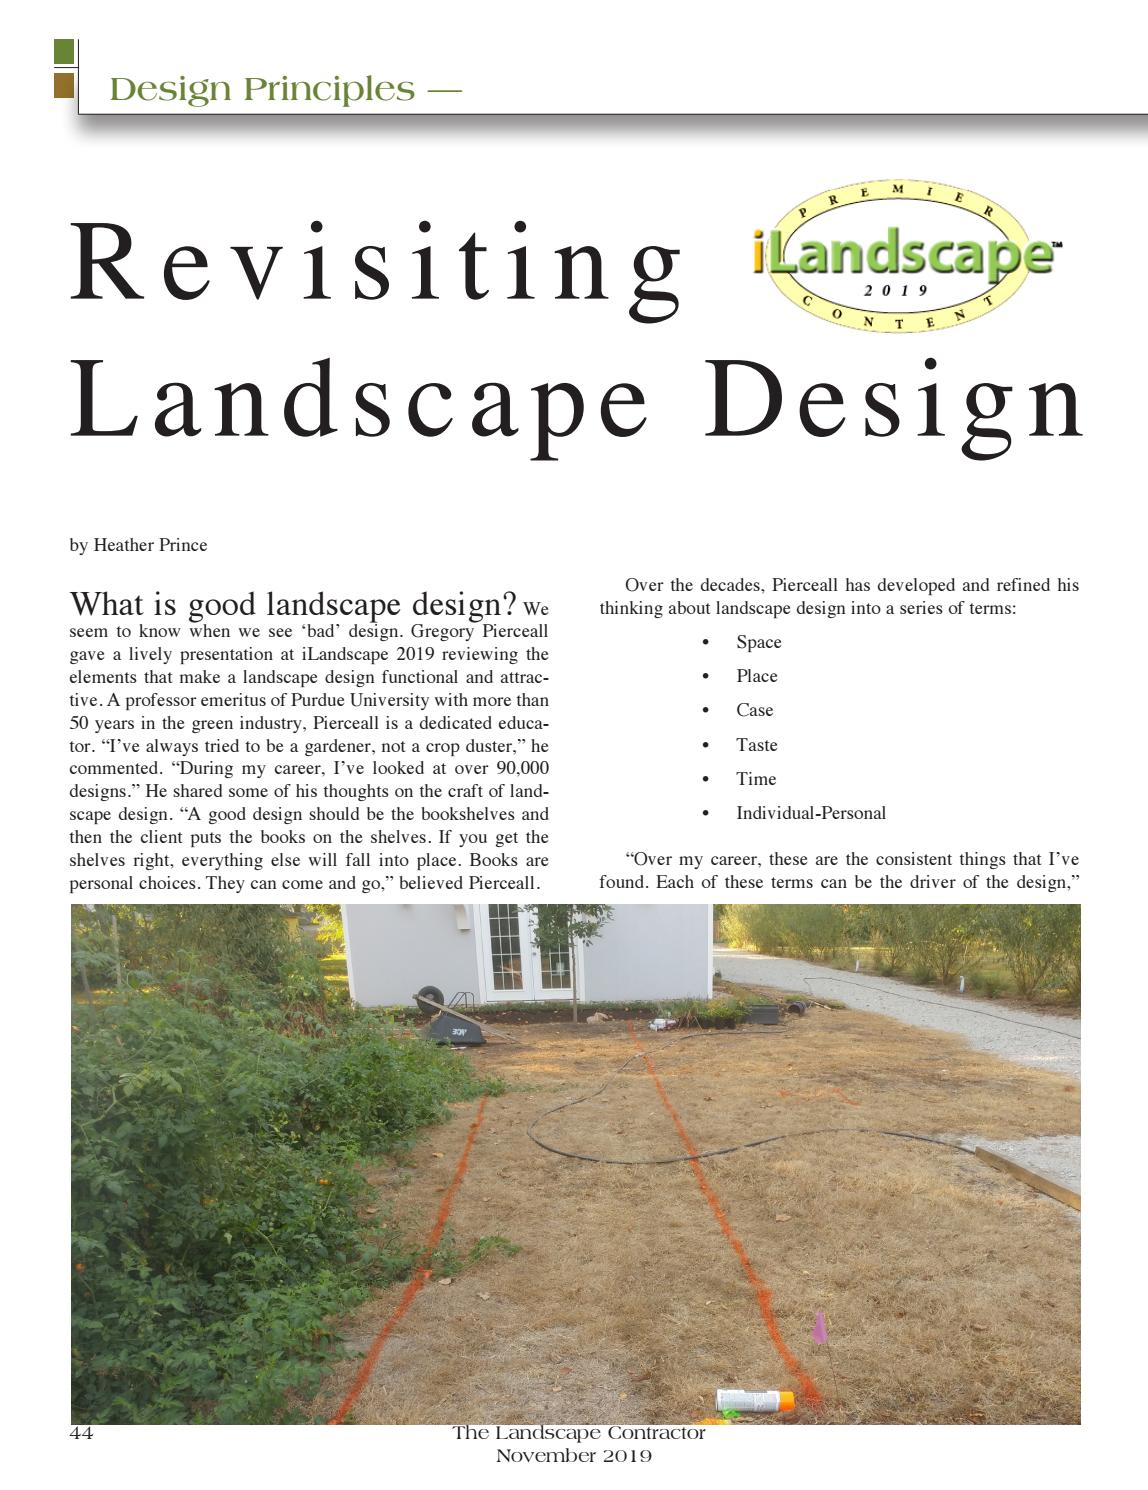 The November 2019 Digital Edition Of The Landscape Contractor